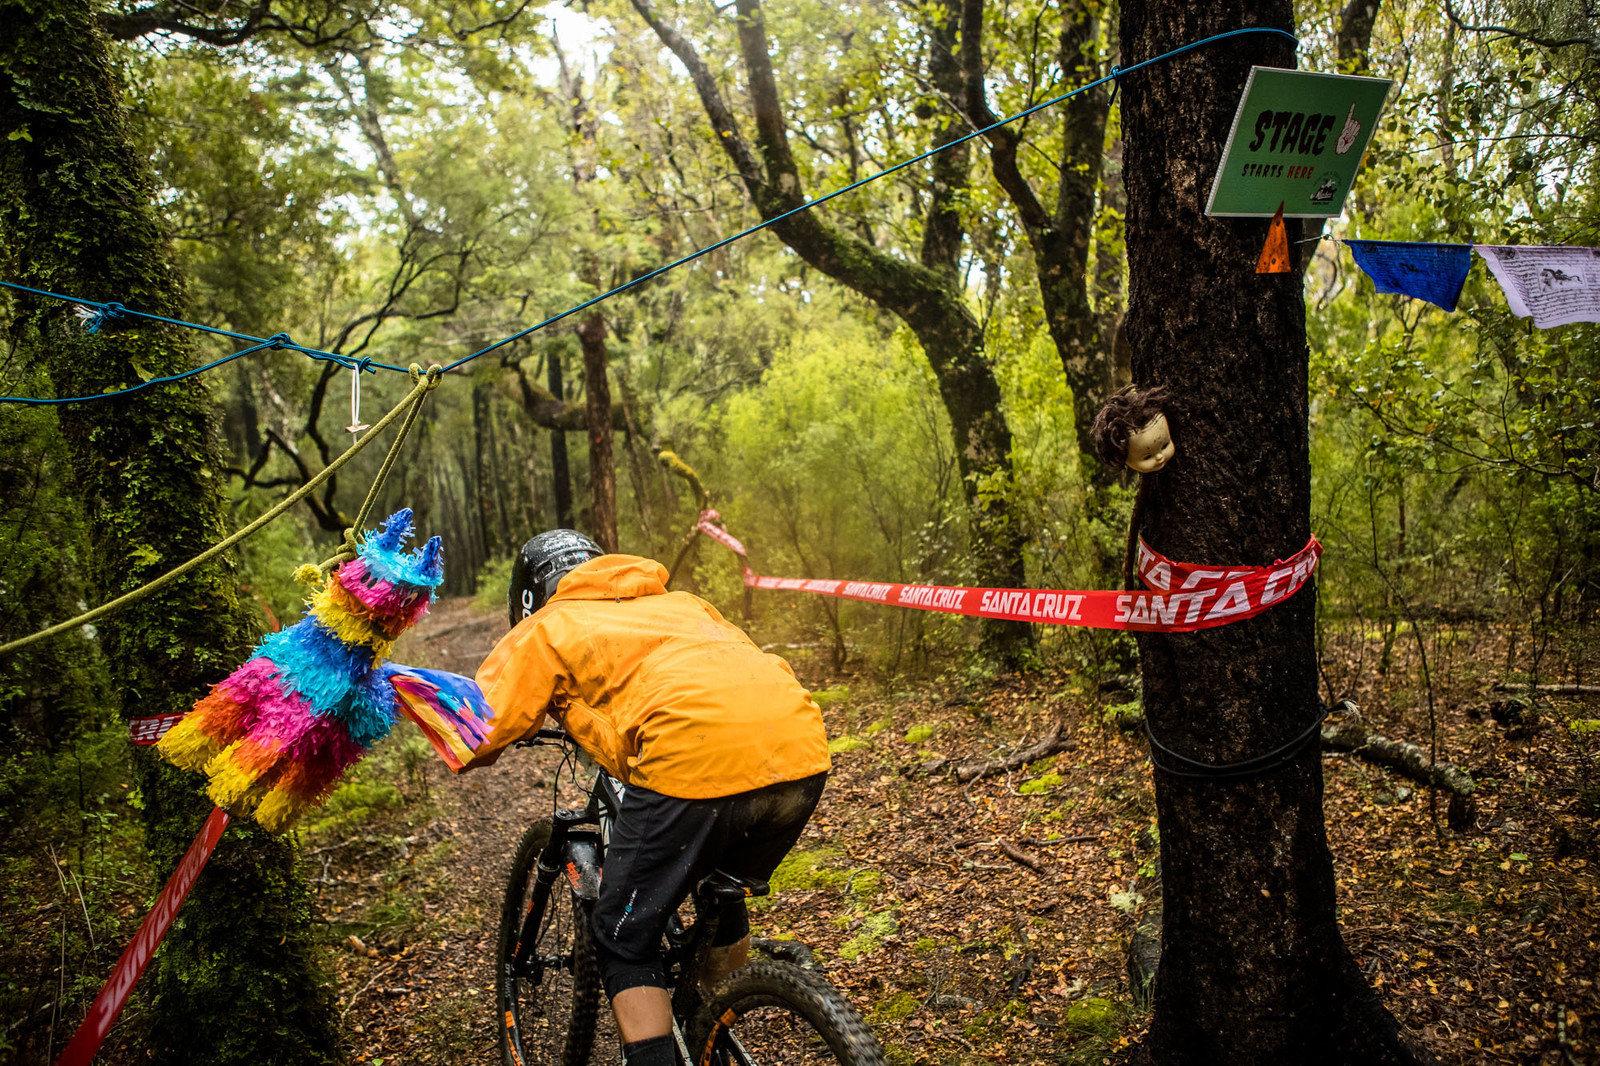 NZEnduro19 BB AS6I9704 - 2019 NZ Enduro Day 1 Photo Gallery - Mountain Biking Pictures - Vital MTB